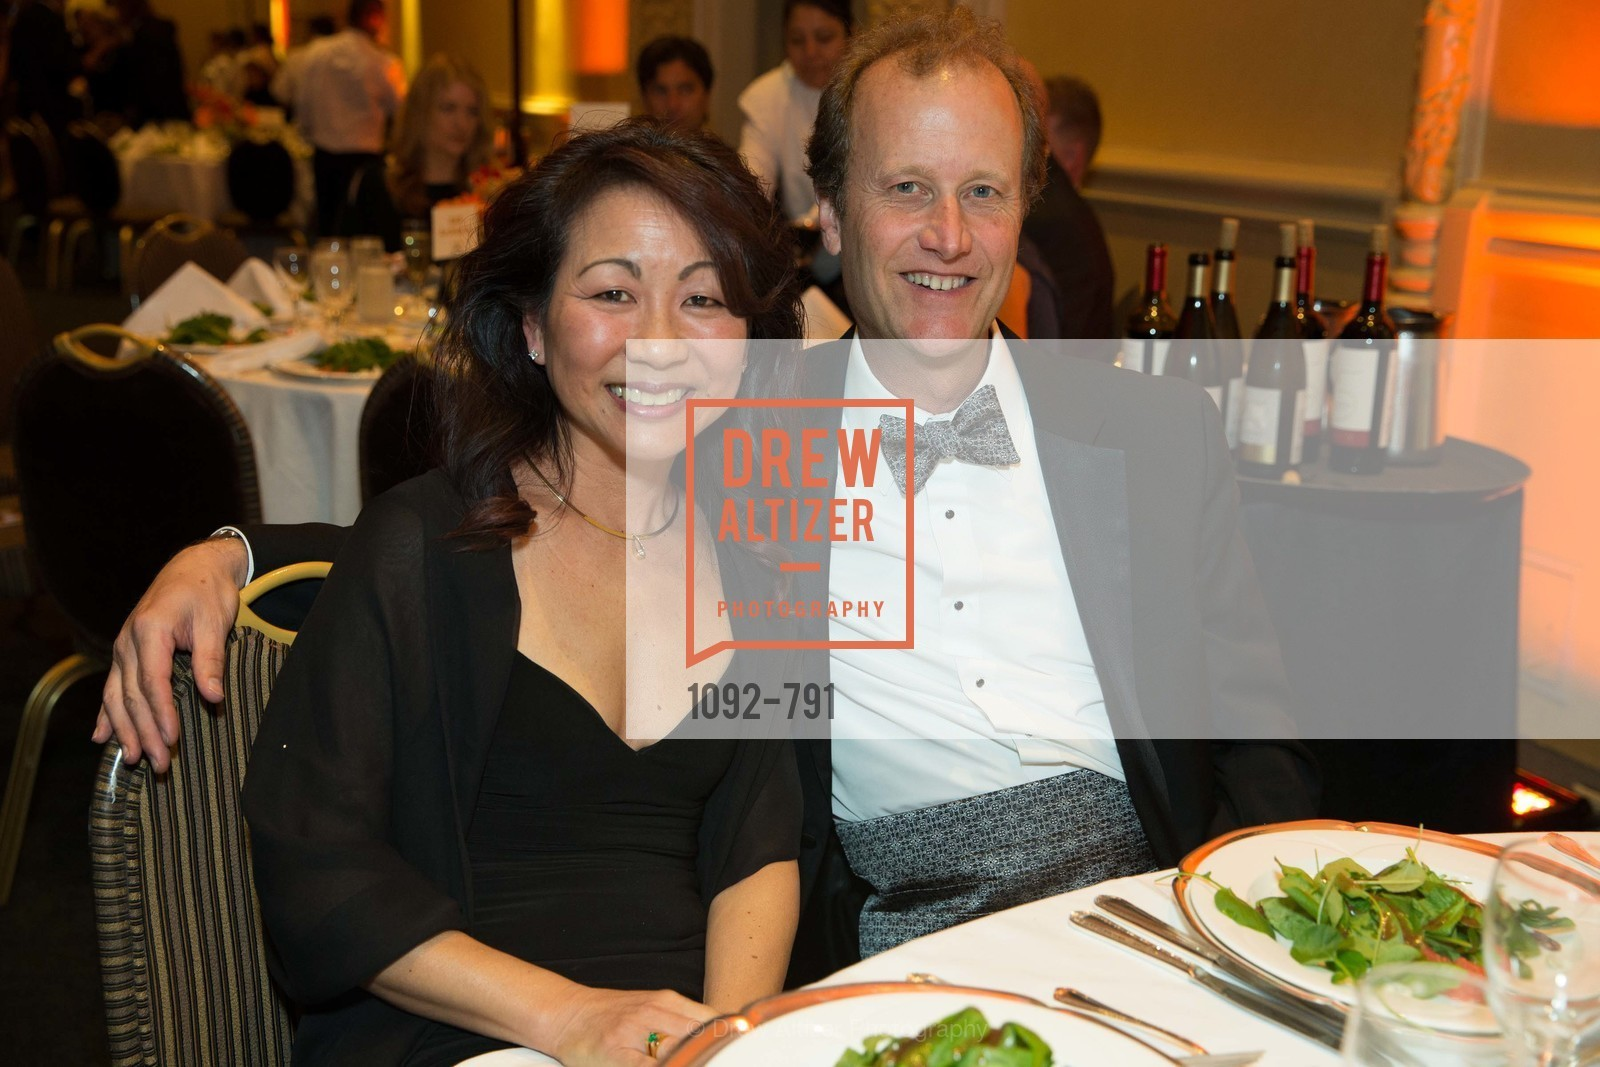 Evon Ballash, Duncan Ballash, SAN FRANCISCO HERITAGE Soiree 2015, US, April 19th, 2015,Drew Altizer, Drew Altizer Photography, full-service agency, private events, San Francisco photographer, photographer california